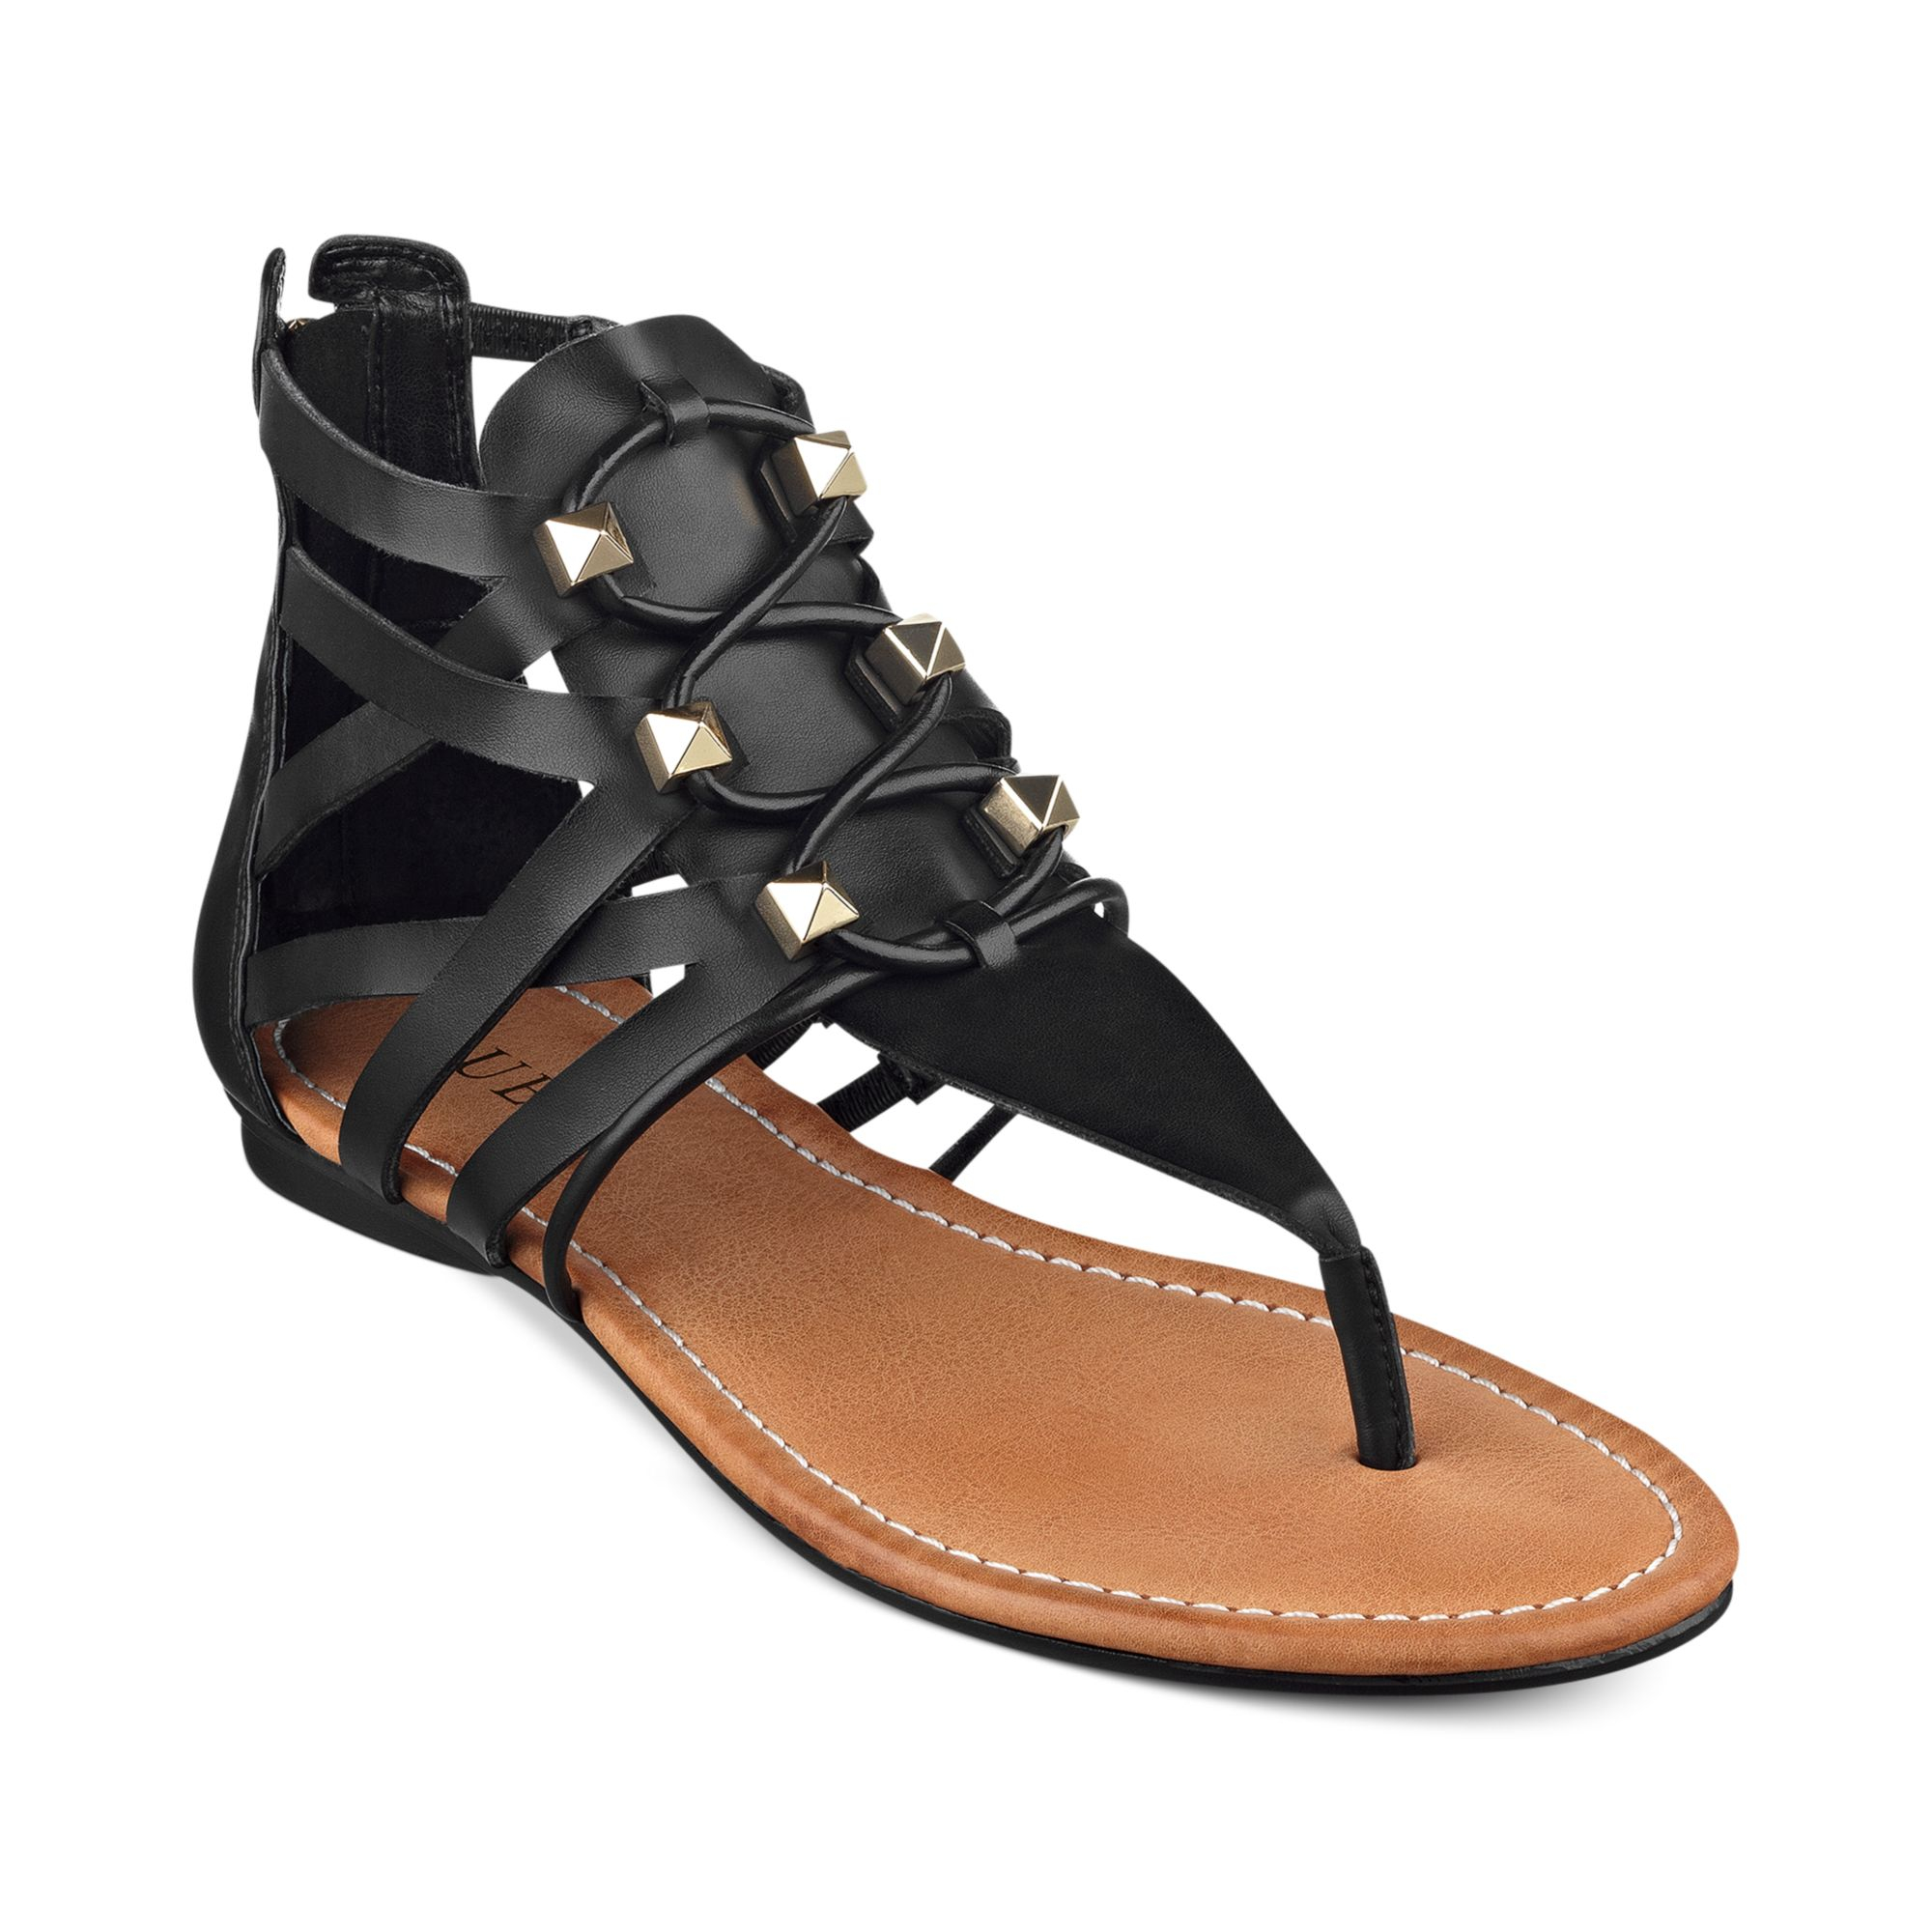 Black Wedge Sandals. Showing 48 of results that match your query. Search Product Result. Lydia Women's Open Toe Strappy Mid Wedge Heel Wood Decoration Buckle Shoes Sandals Black See Details. Product - Hotsoles Single Strap Women's Wedge Sandal in Black.